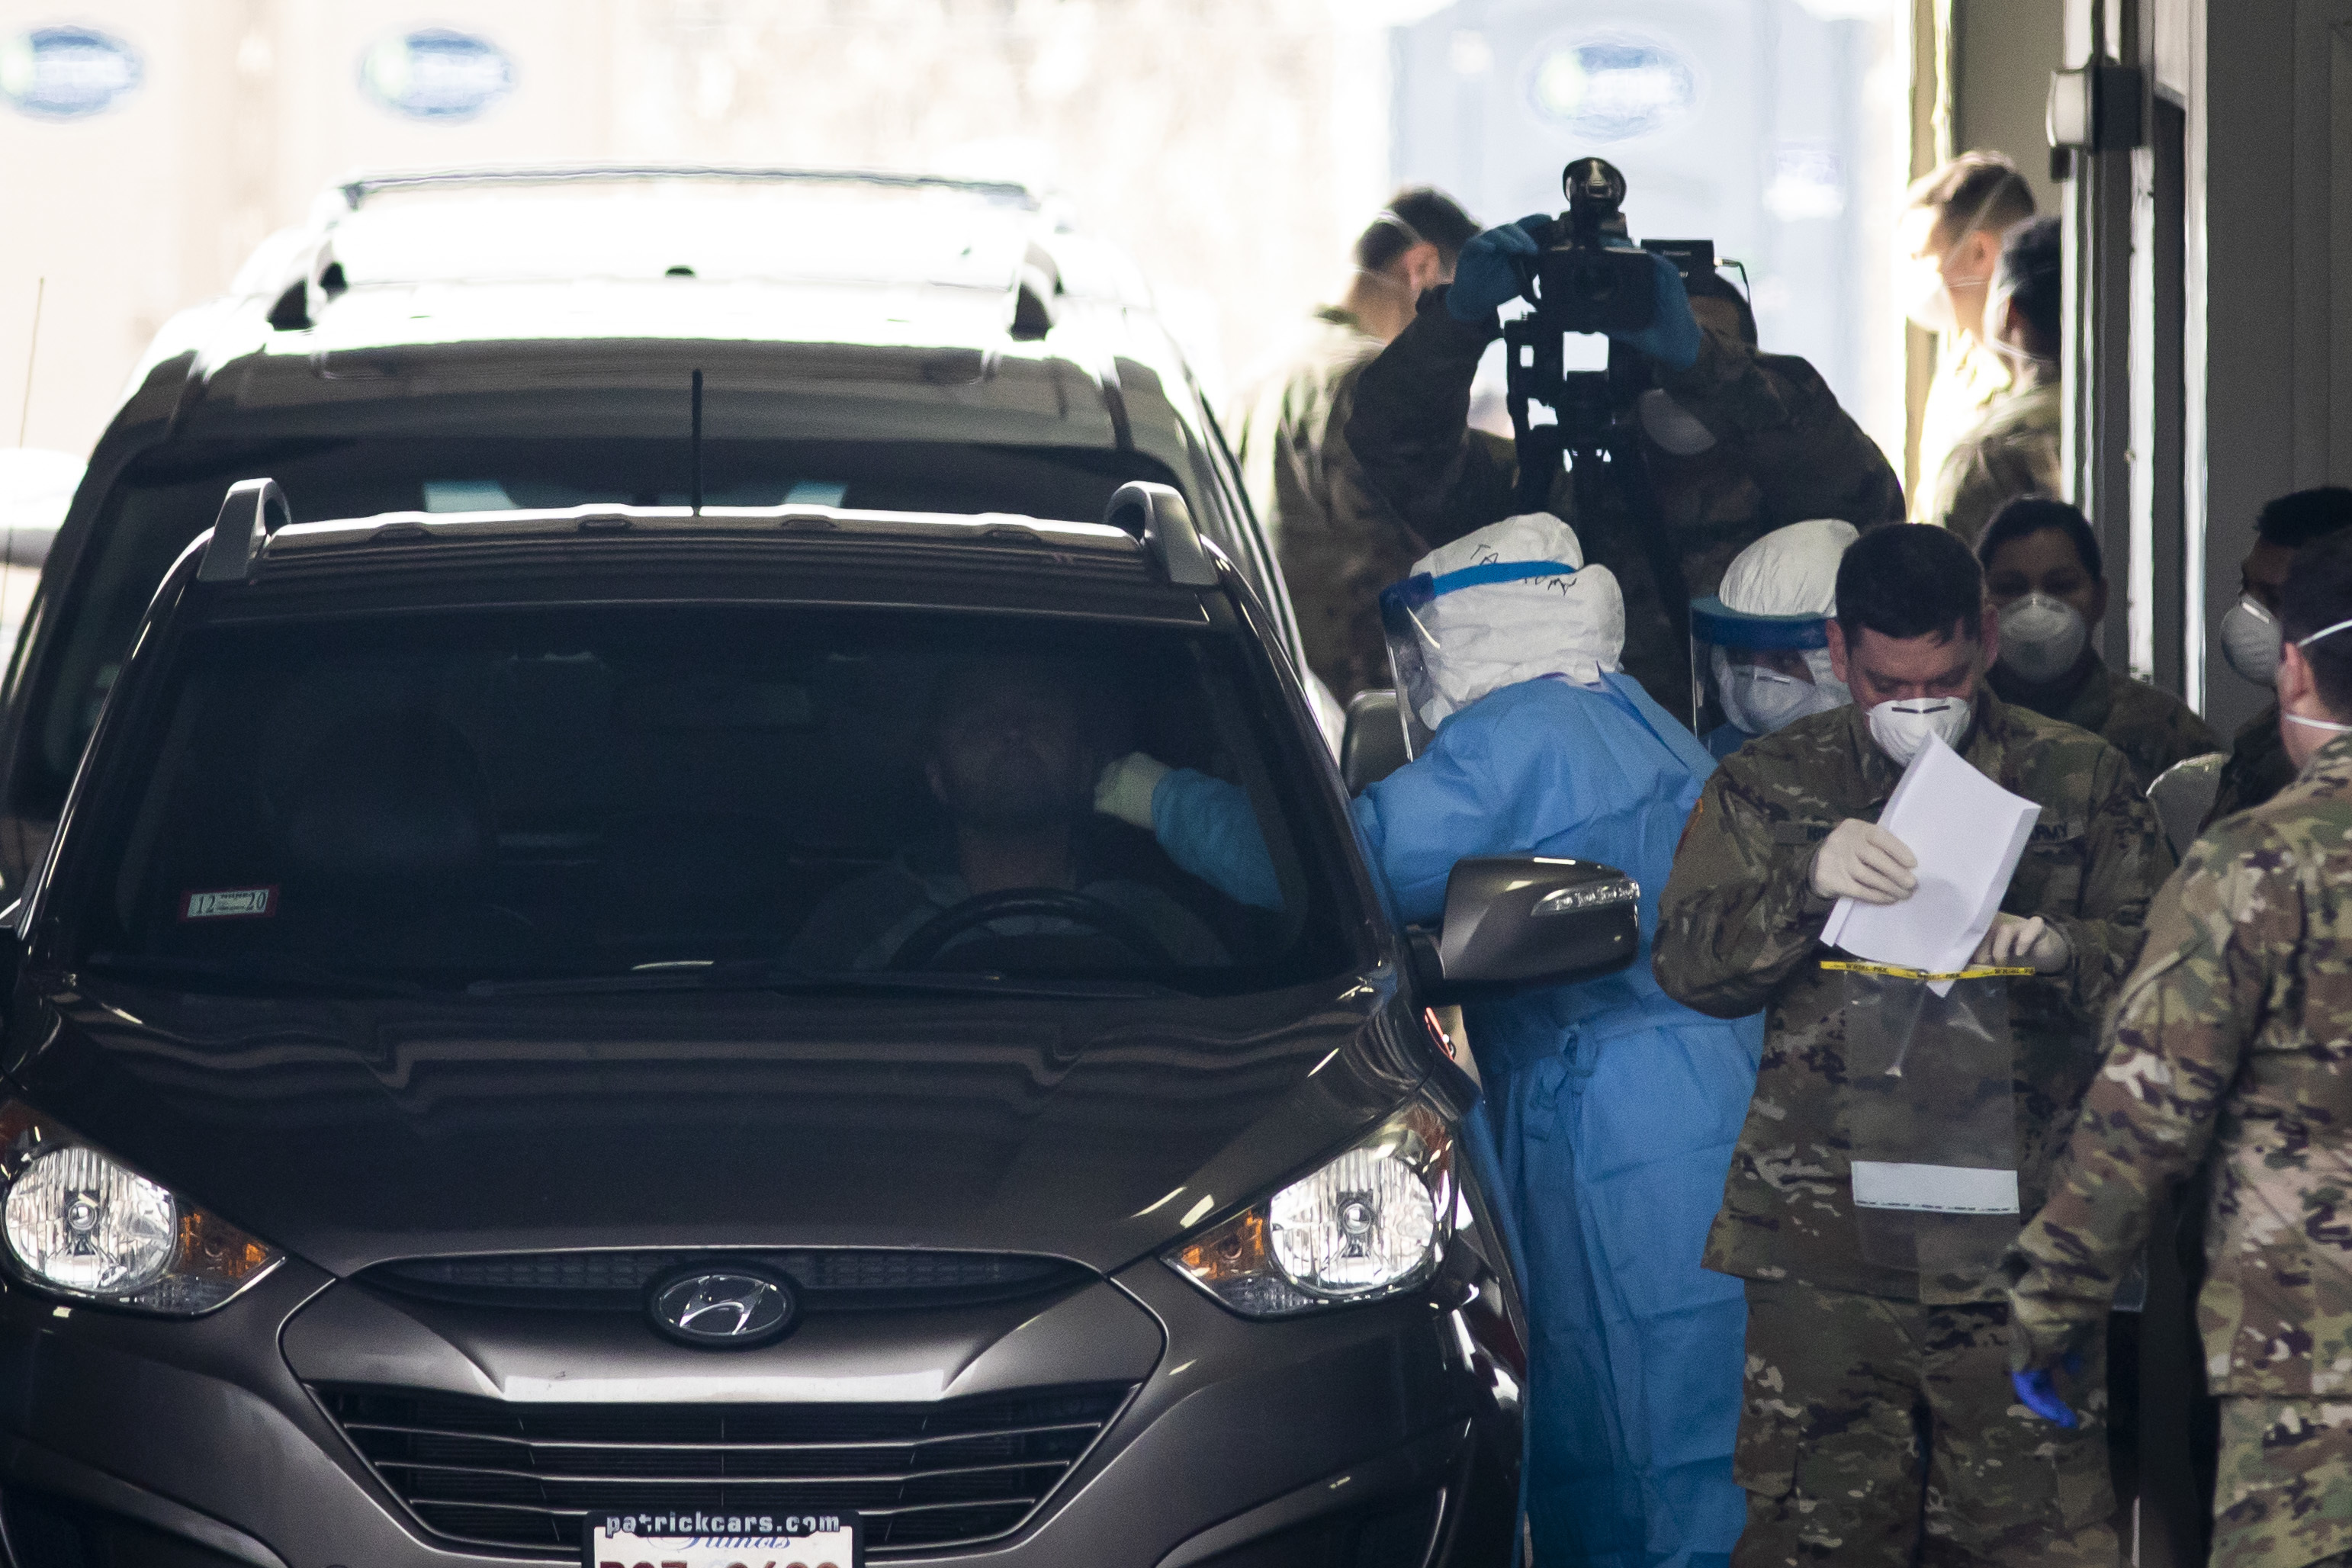 The Illinois National Guard operates a COVID-19 drive-thru test site for medical personnel and first responders at 6959 Forest Preserve Dr., Tuesday morning, March 24, 2020.